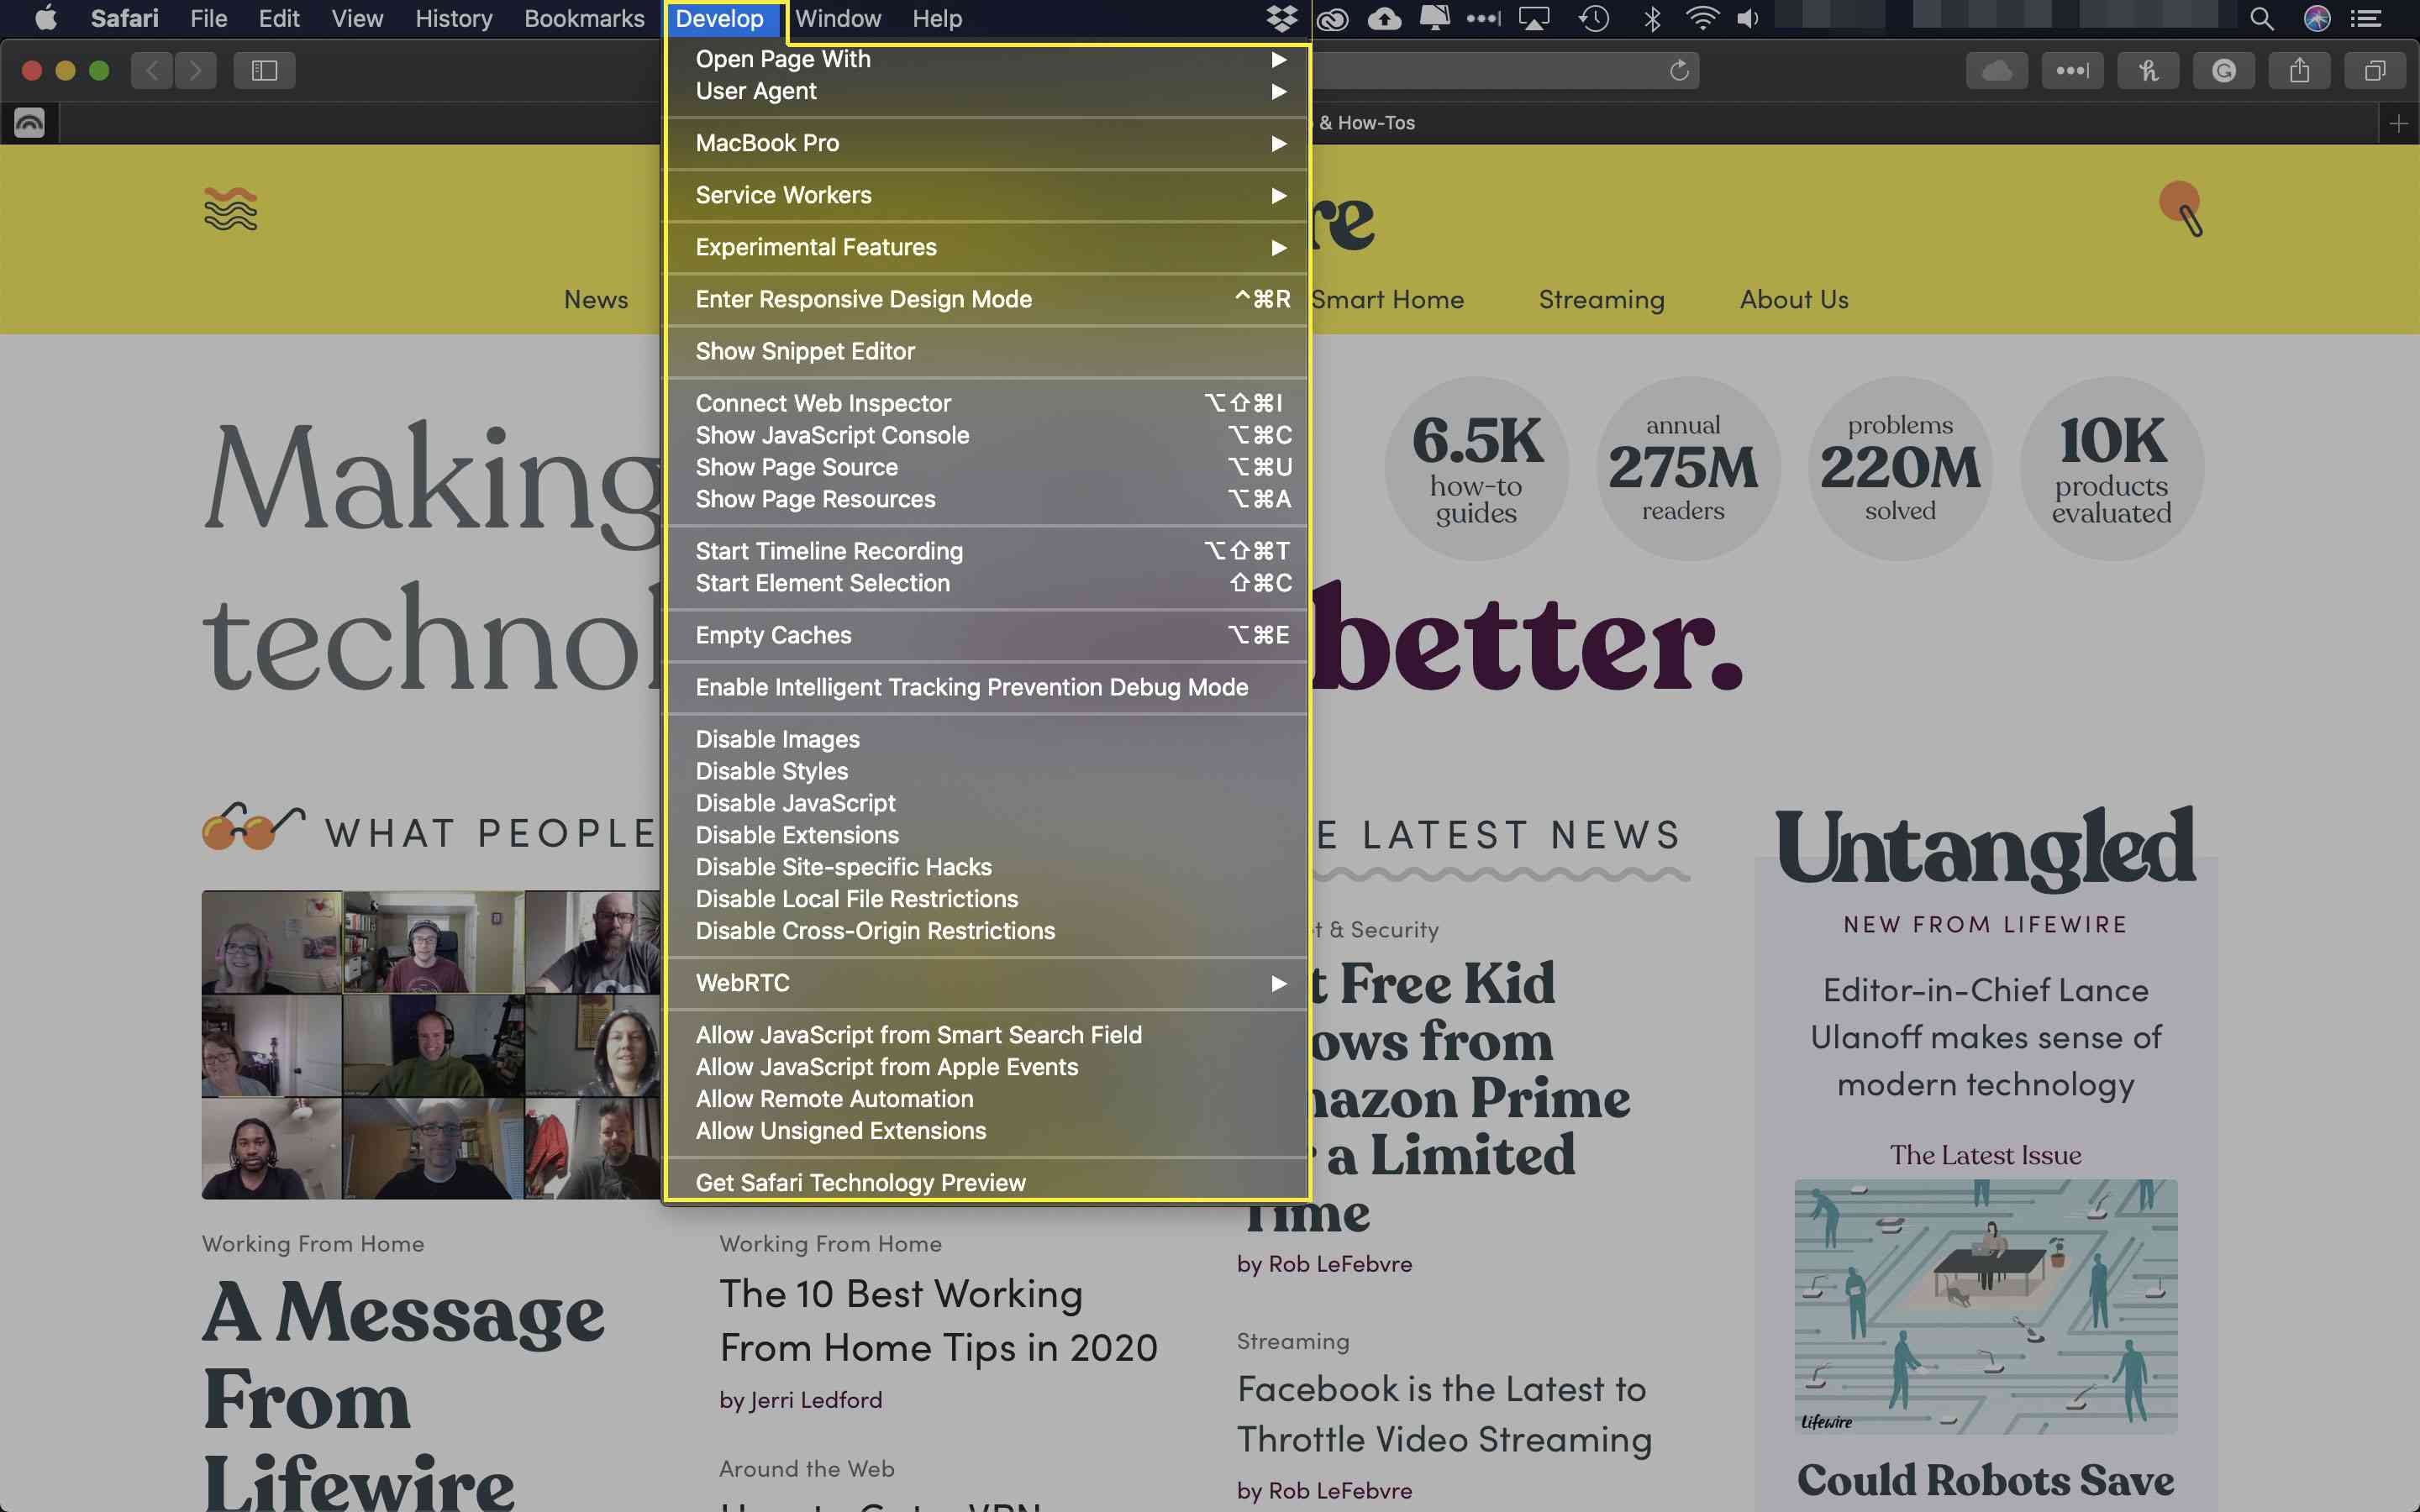 A screenshot of Safari with the Develop menu highlighted